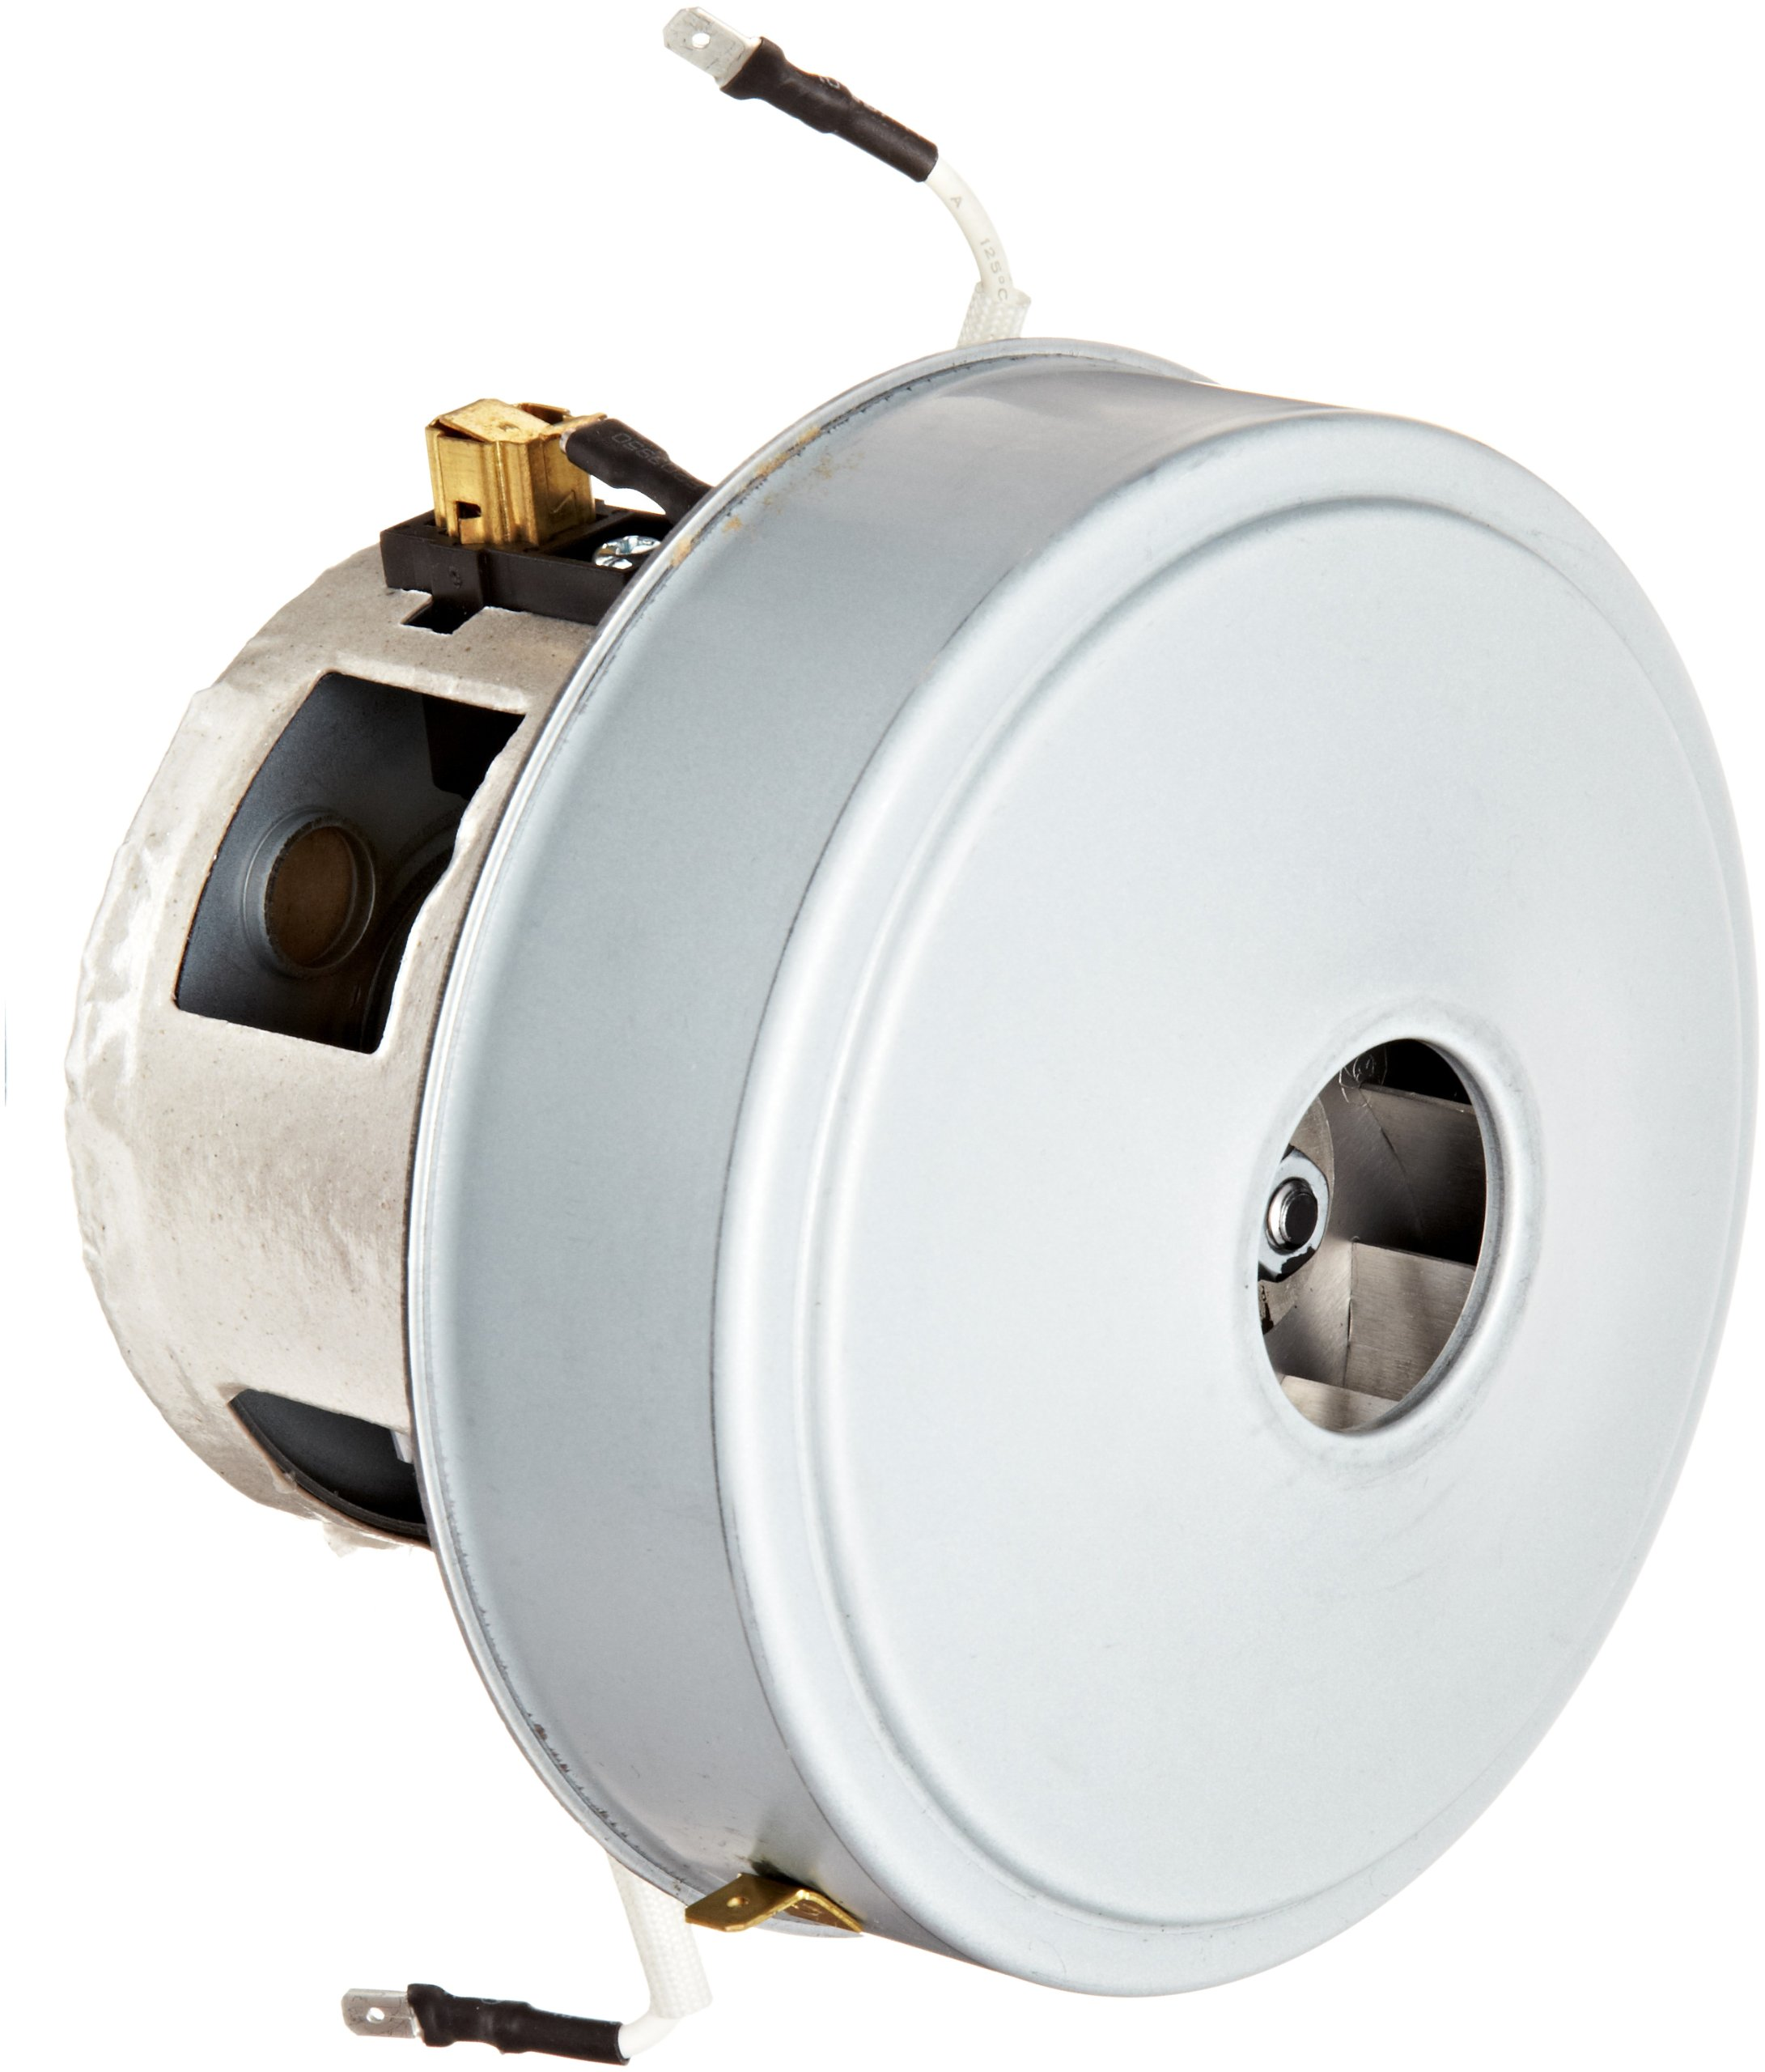 American Dryer GXT216 Replacement Motor/Blower Assembly, 5/8 HP, 14,000-24,000 RPM, 115V, for GXT6, GXT9, EXT2, and EXT7 Model Hand Dryers